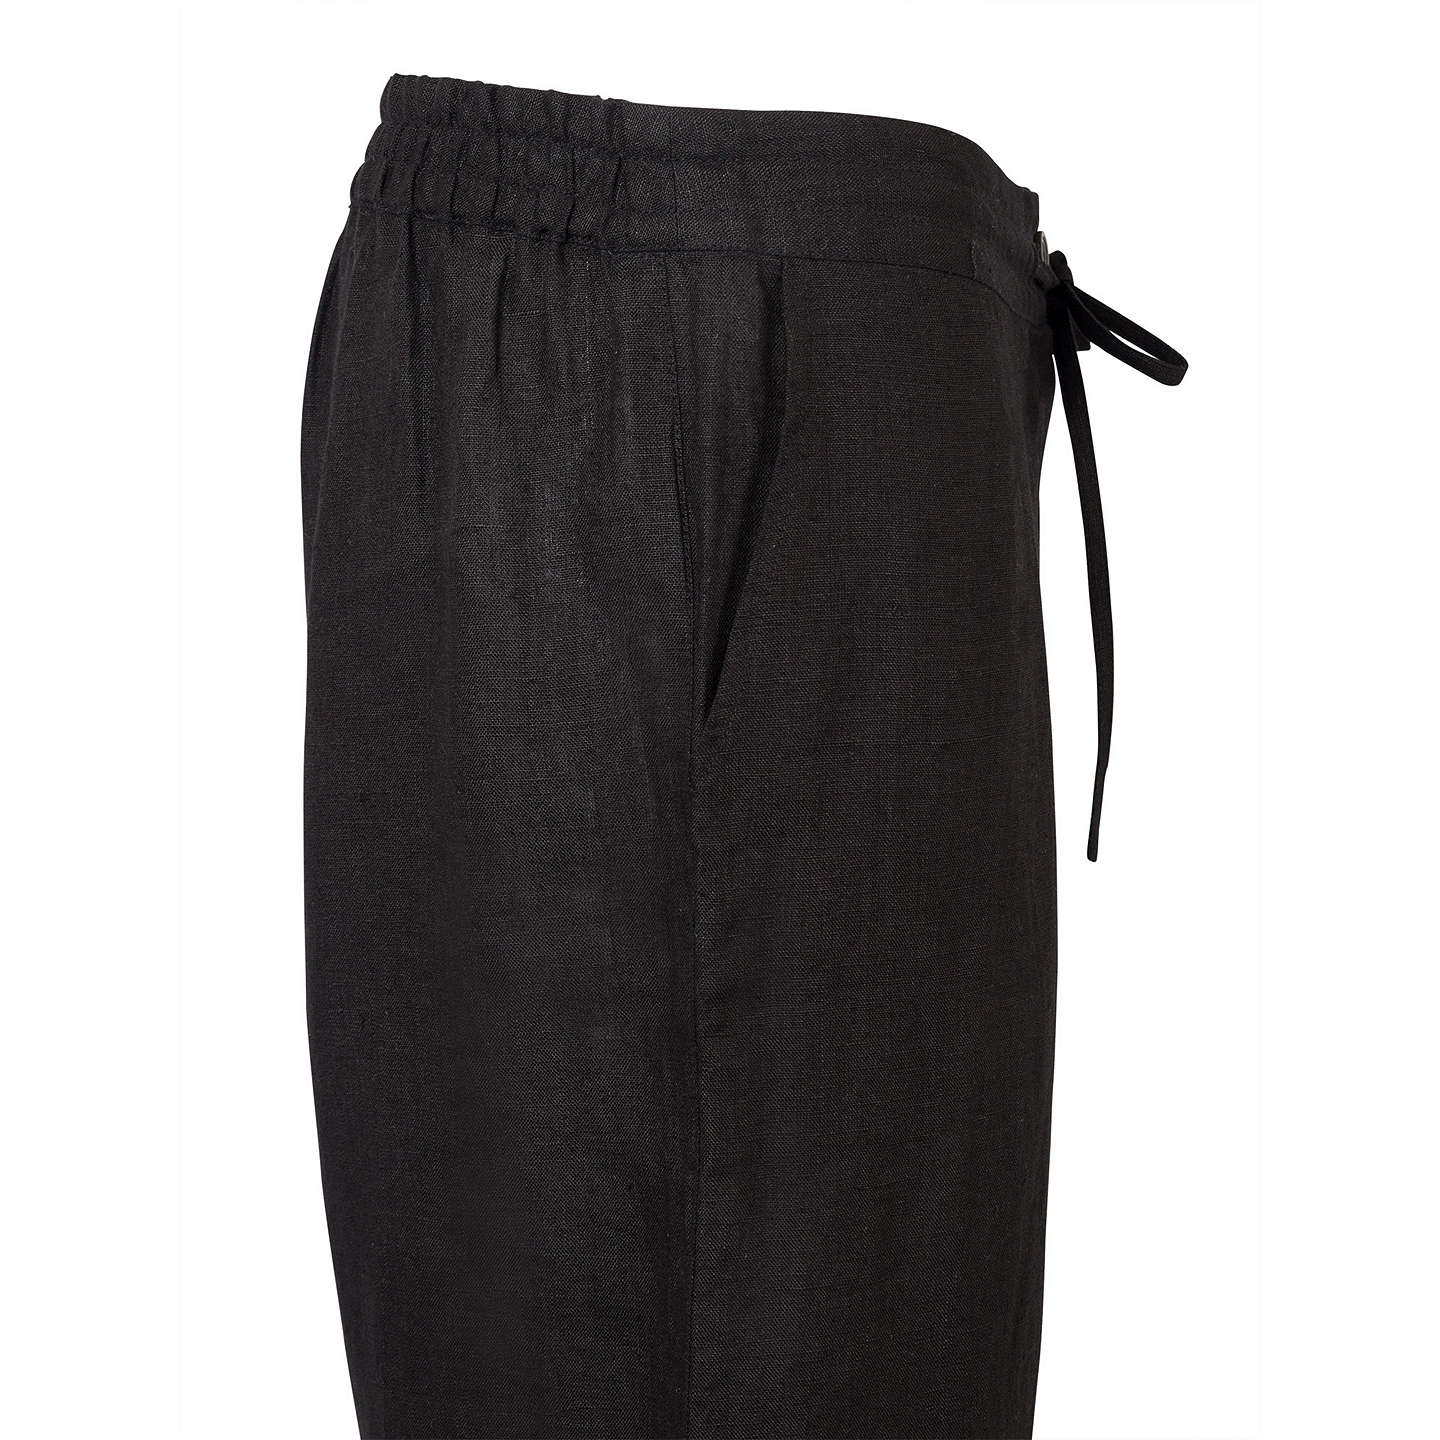 BuyEast Linen Drawstring Trousers, Black, 10 Online at johnlewis.com